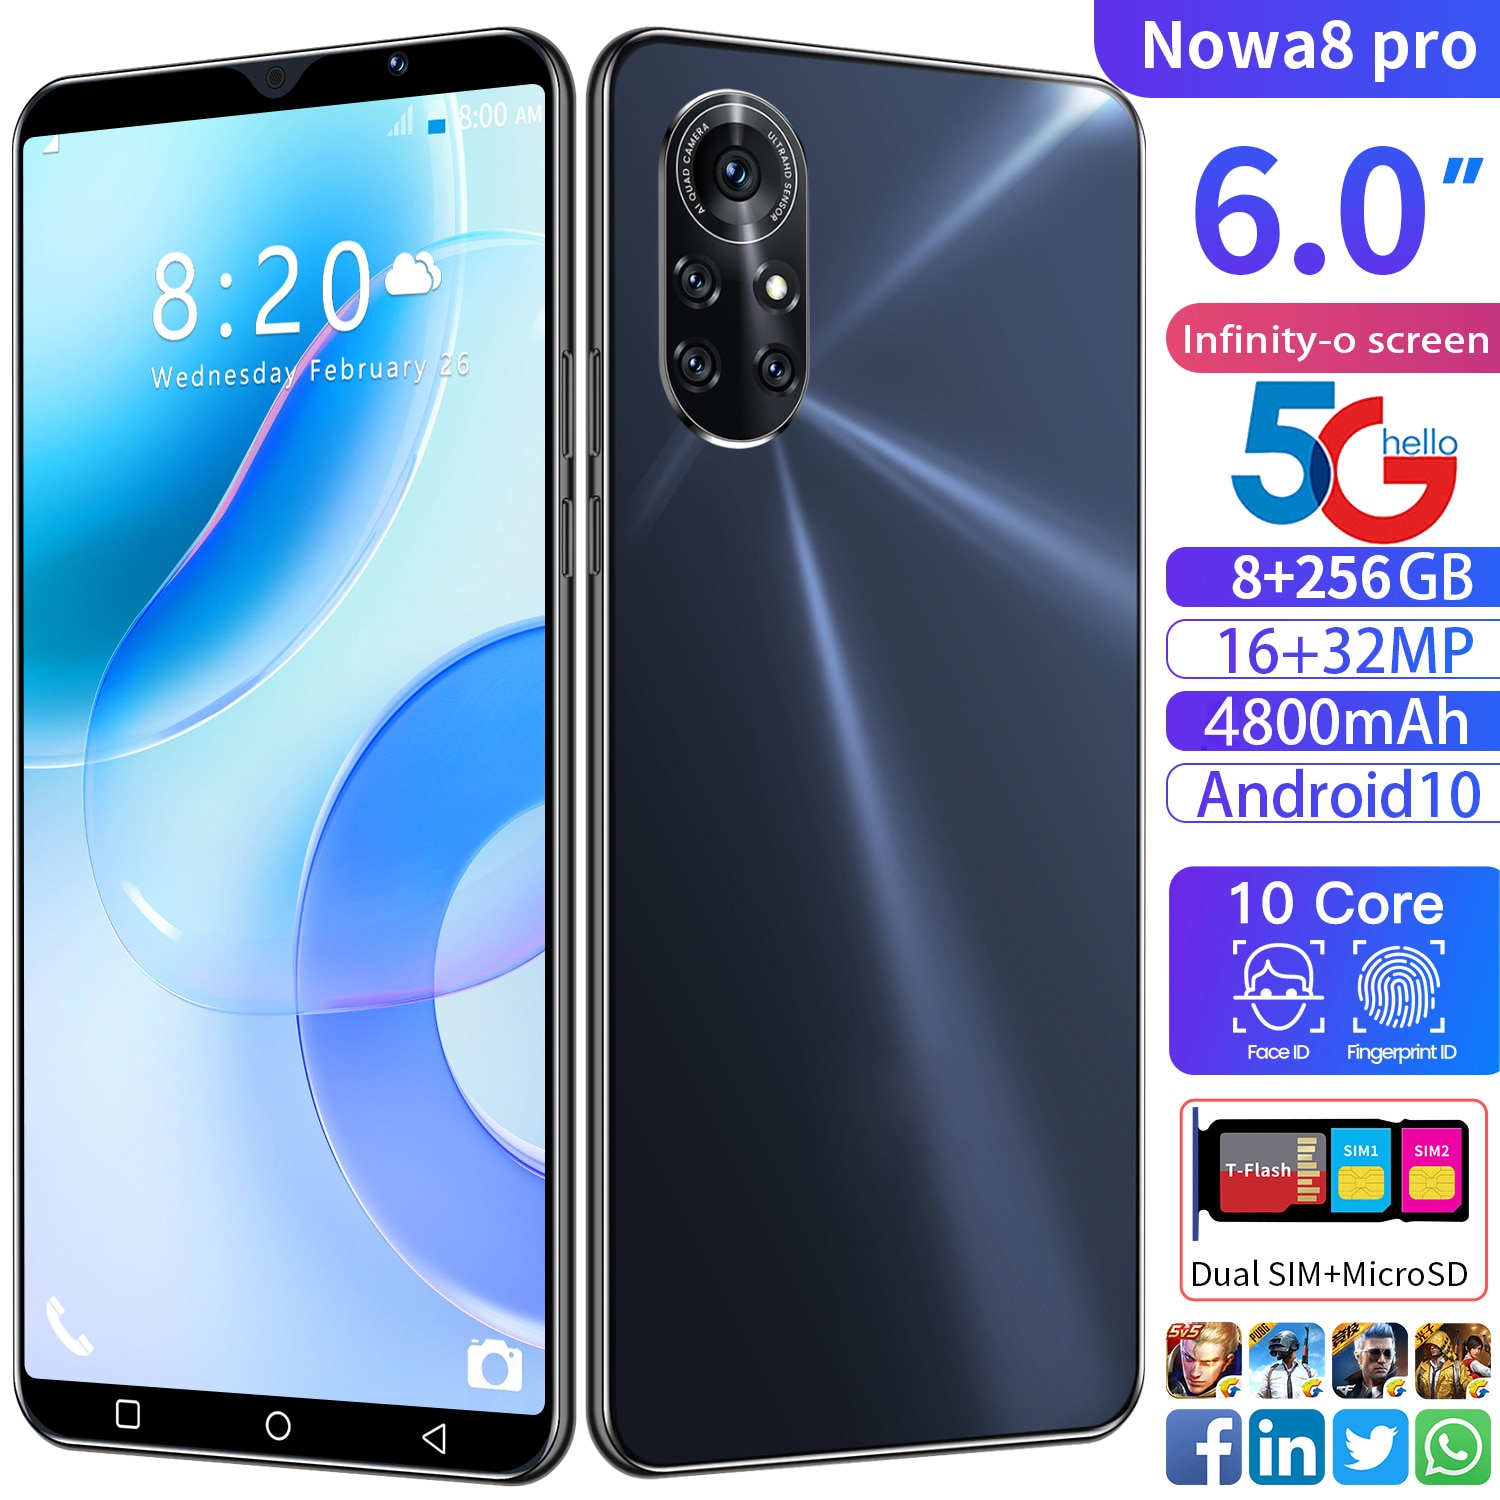 2021 Global Version Nowa8 Pro Smartphones 6.0Inch Dual SIM 8 256GB 4800mAh 16+32MP Android 10 Core 4G 5G LTE MTK6889 MobilePhone